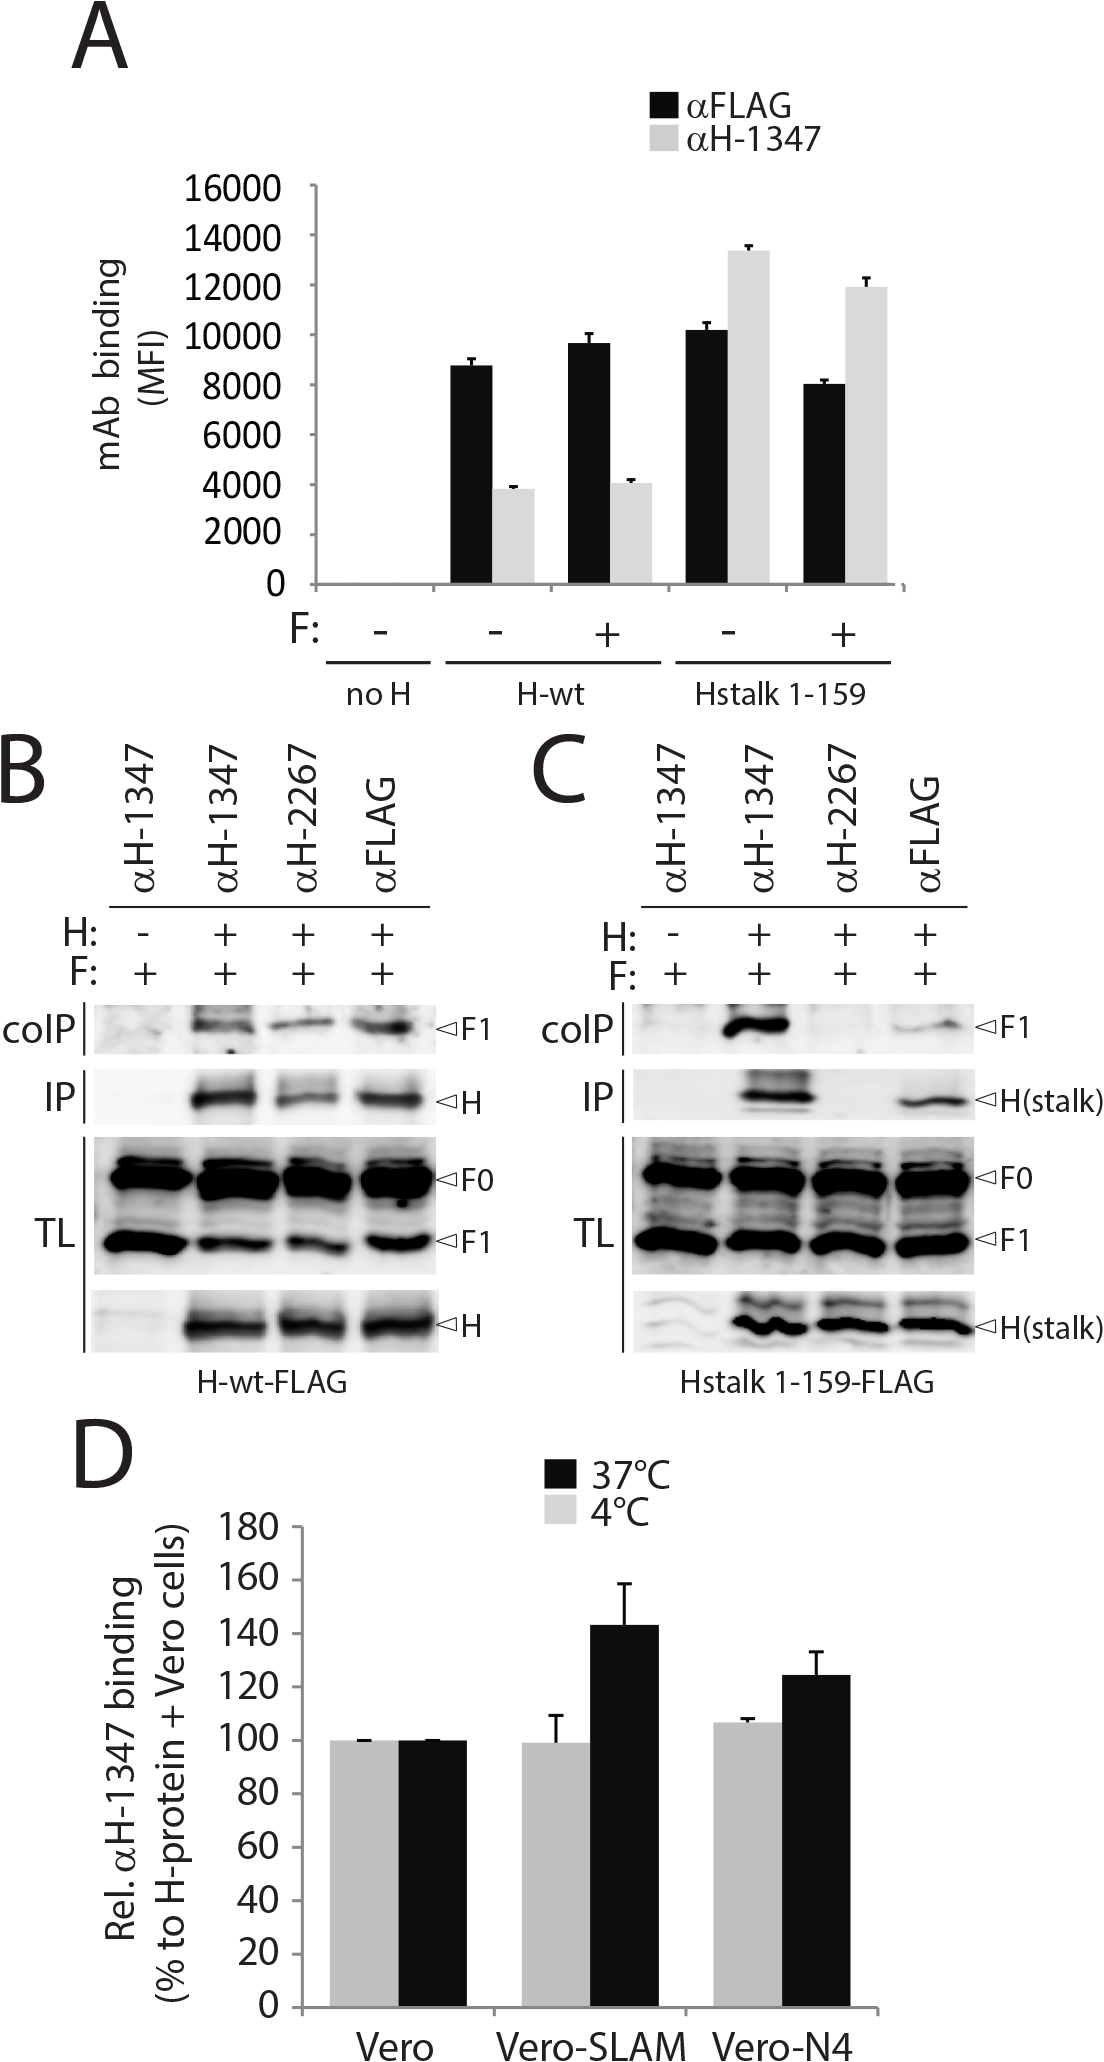 Receptor-induced conformational change in H detected by mAb αH-1347.